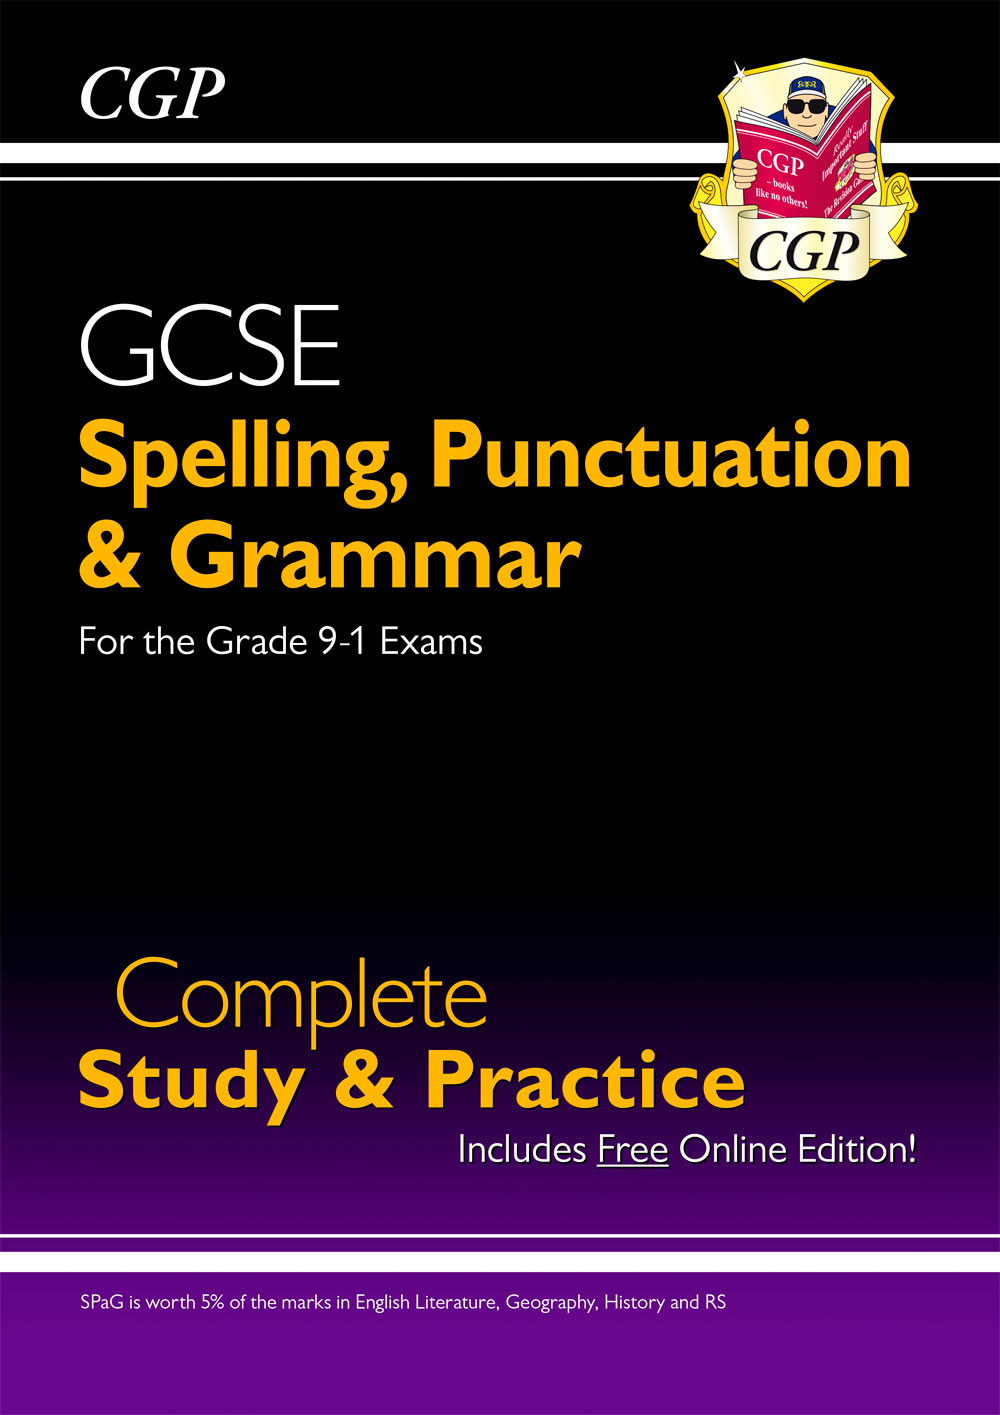 EGS43 - Spelling, Punctuation and Grammar for Grade 9-1 GCSE Complete Study & Practice (with Online